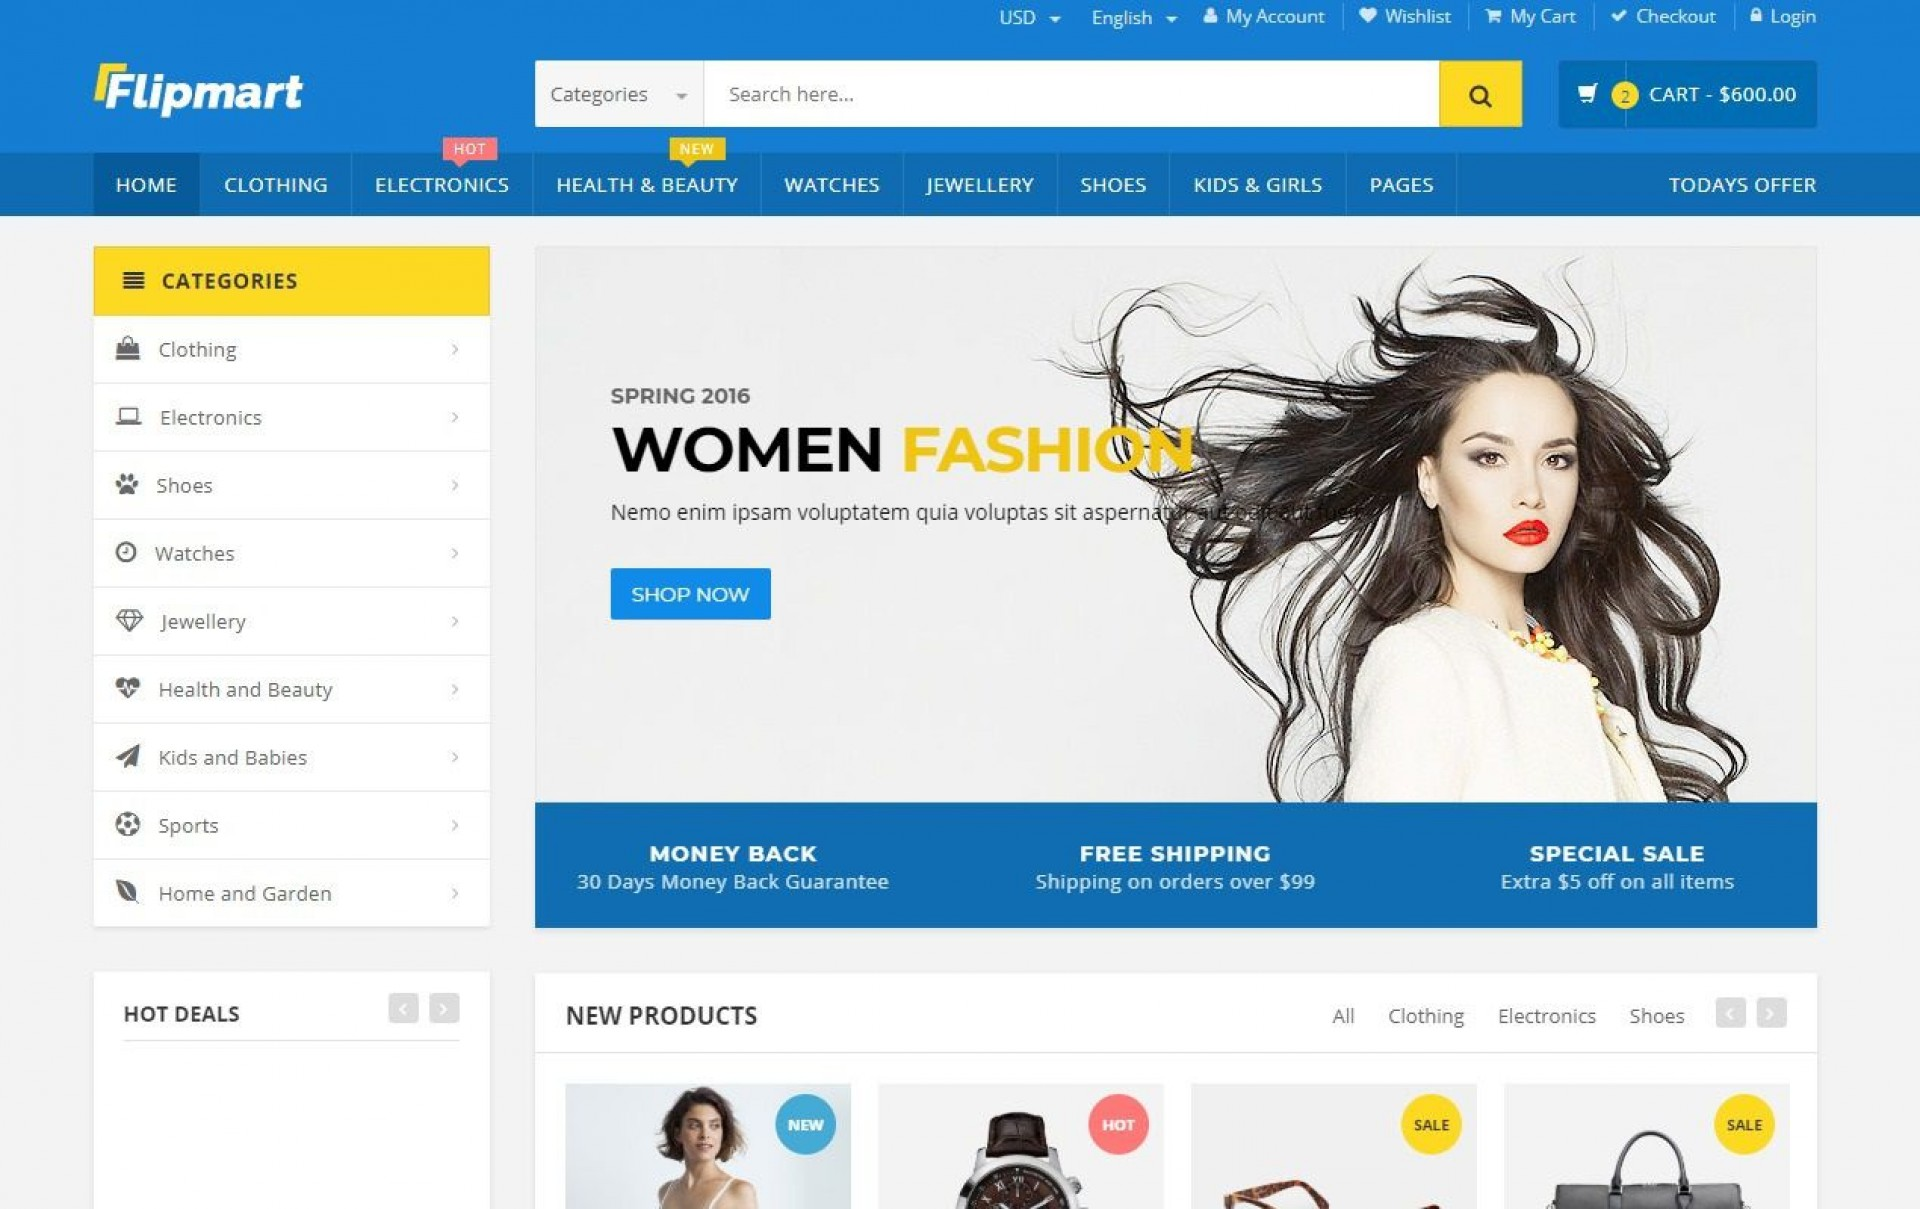 005 Formidable Free Ecommerce Website Template High Resolution  Templates Github For Blogger Shopping Cart Wordpres1920